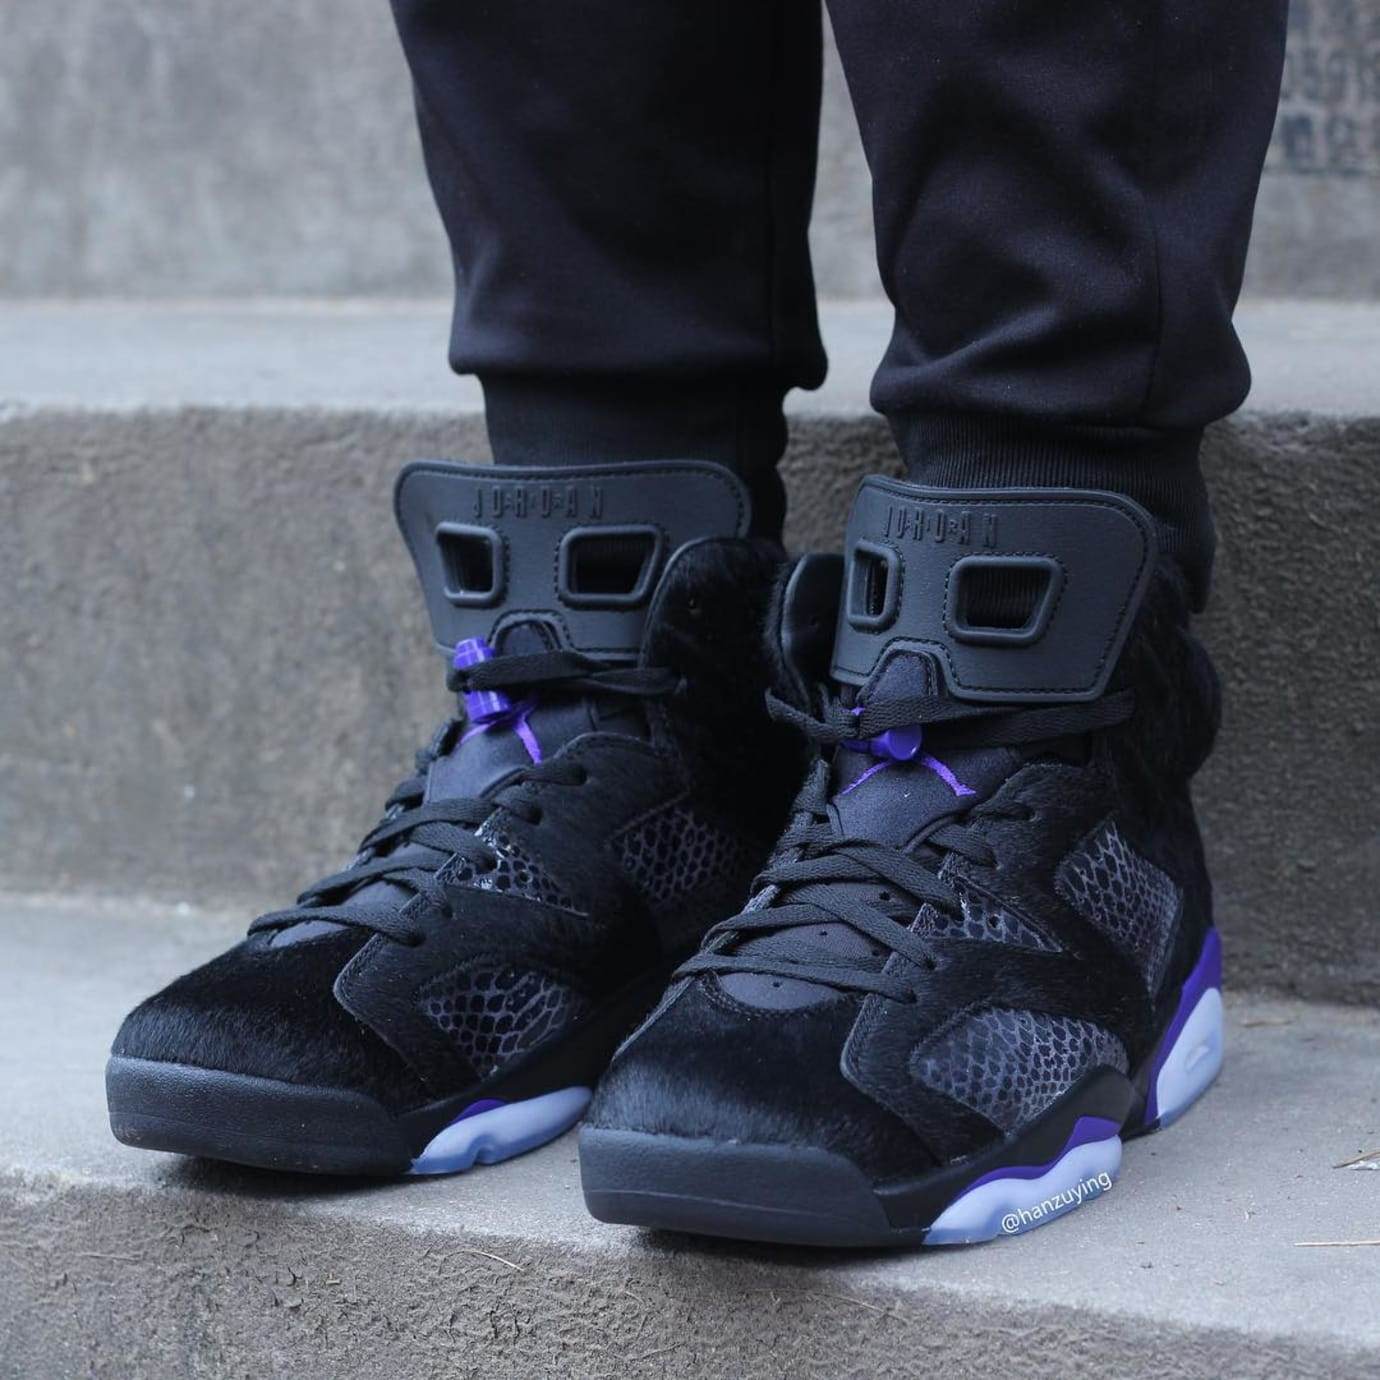 c04944c21f8 Image via hanzuying · Air Jordan 6 VI Cow Fur Snakeskin Black Purple  Release Date AR2257-005 On-